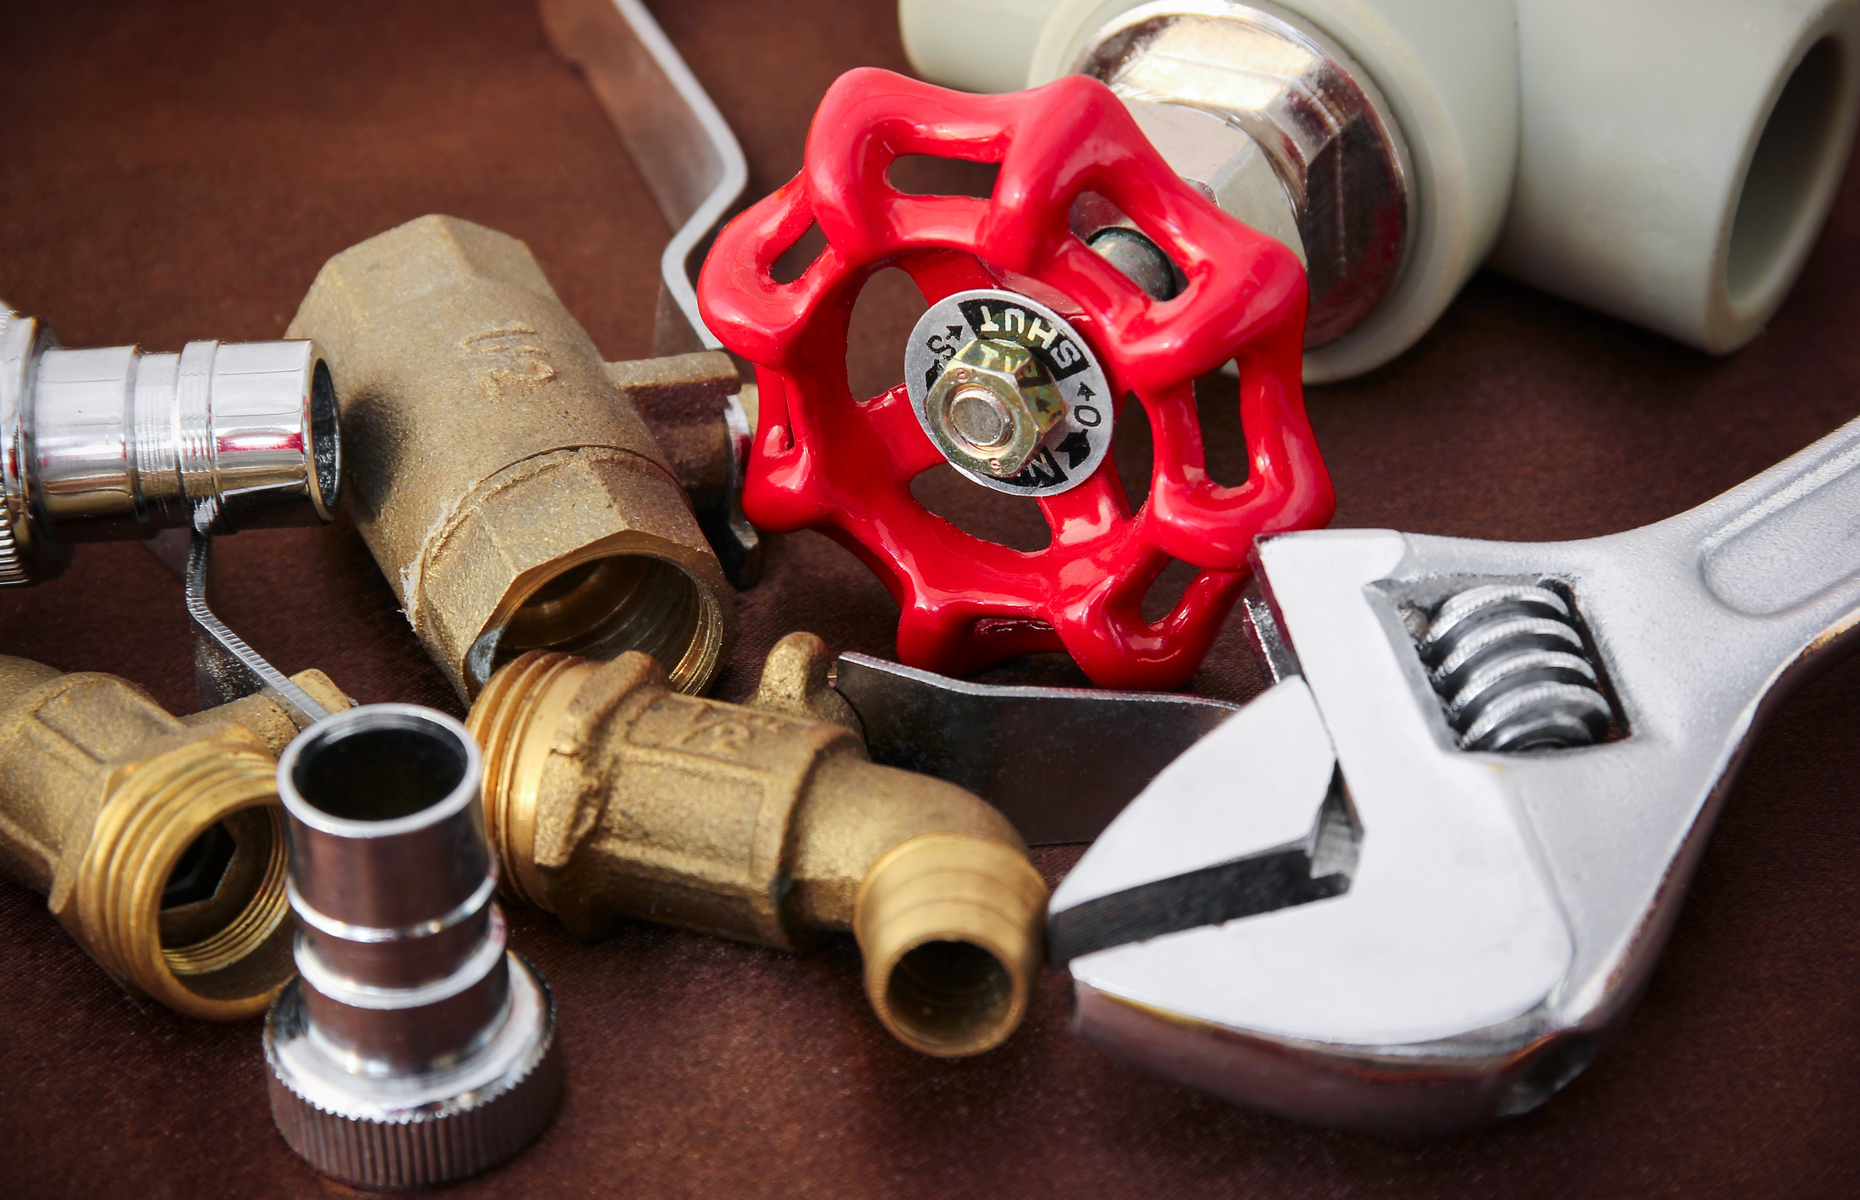 Tools and materials for essential repairs are still available to purchase online. Image: Lonely Walker / Shutterstock